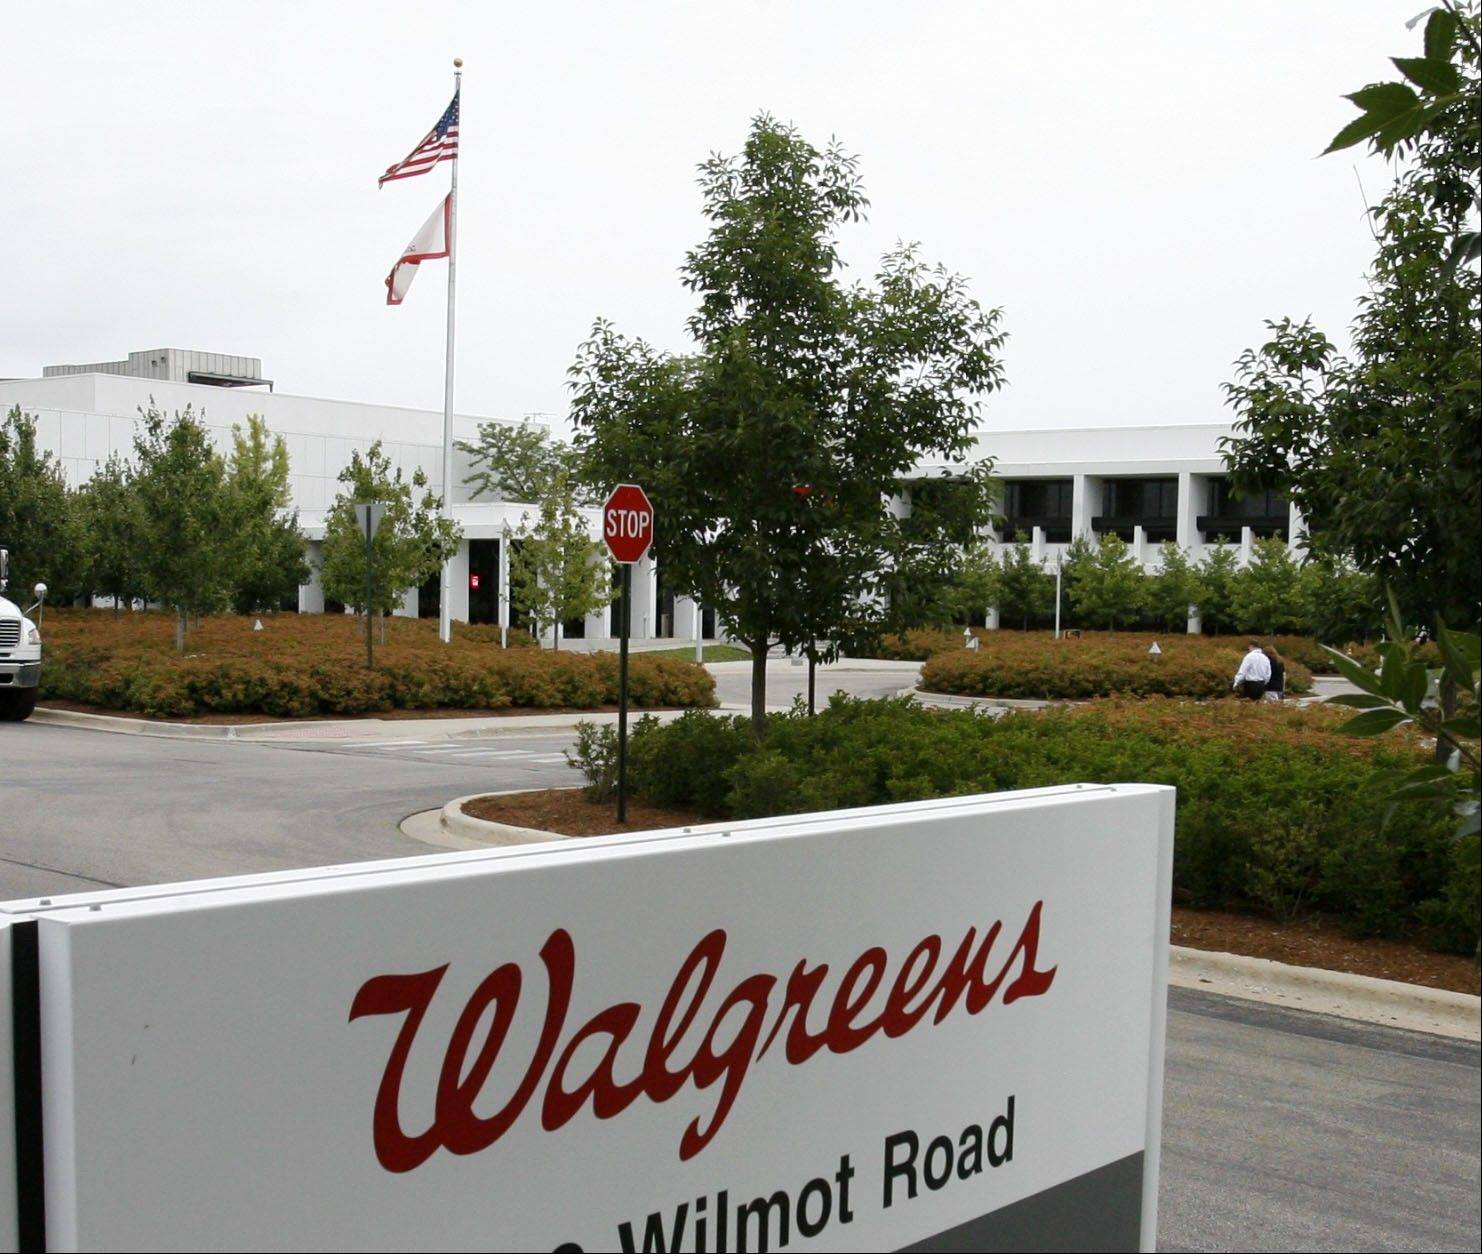 Deerfield-based Walgreen Company said Tuesday that revenue from stores open at least a year fell 0.6 percent in February.